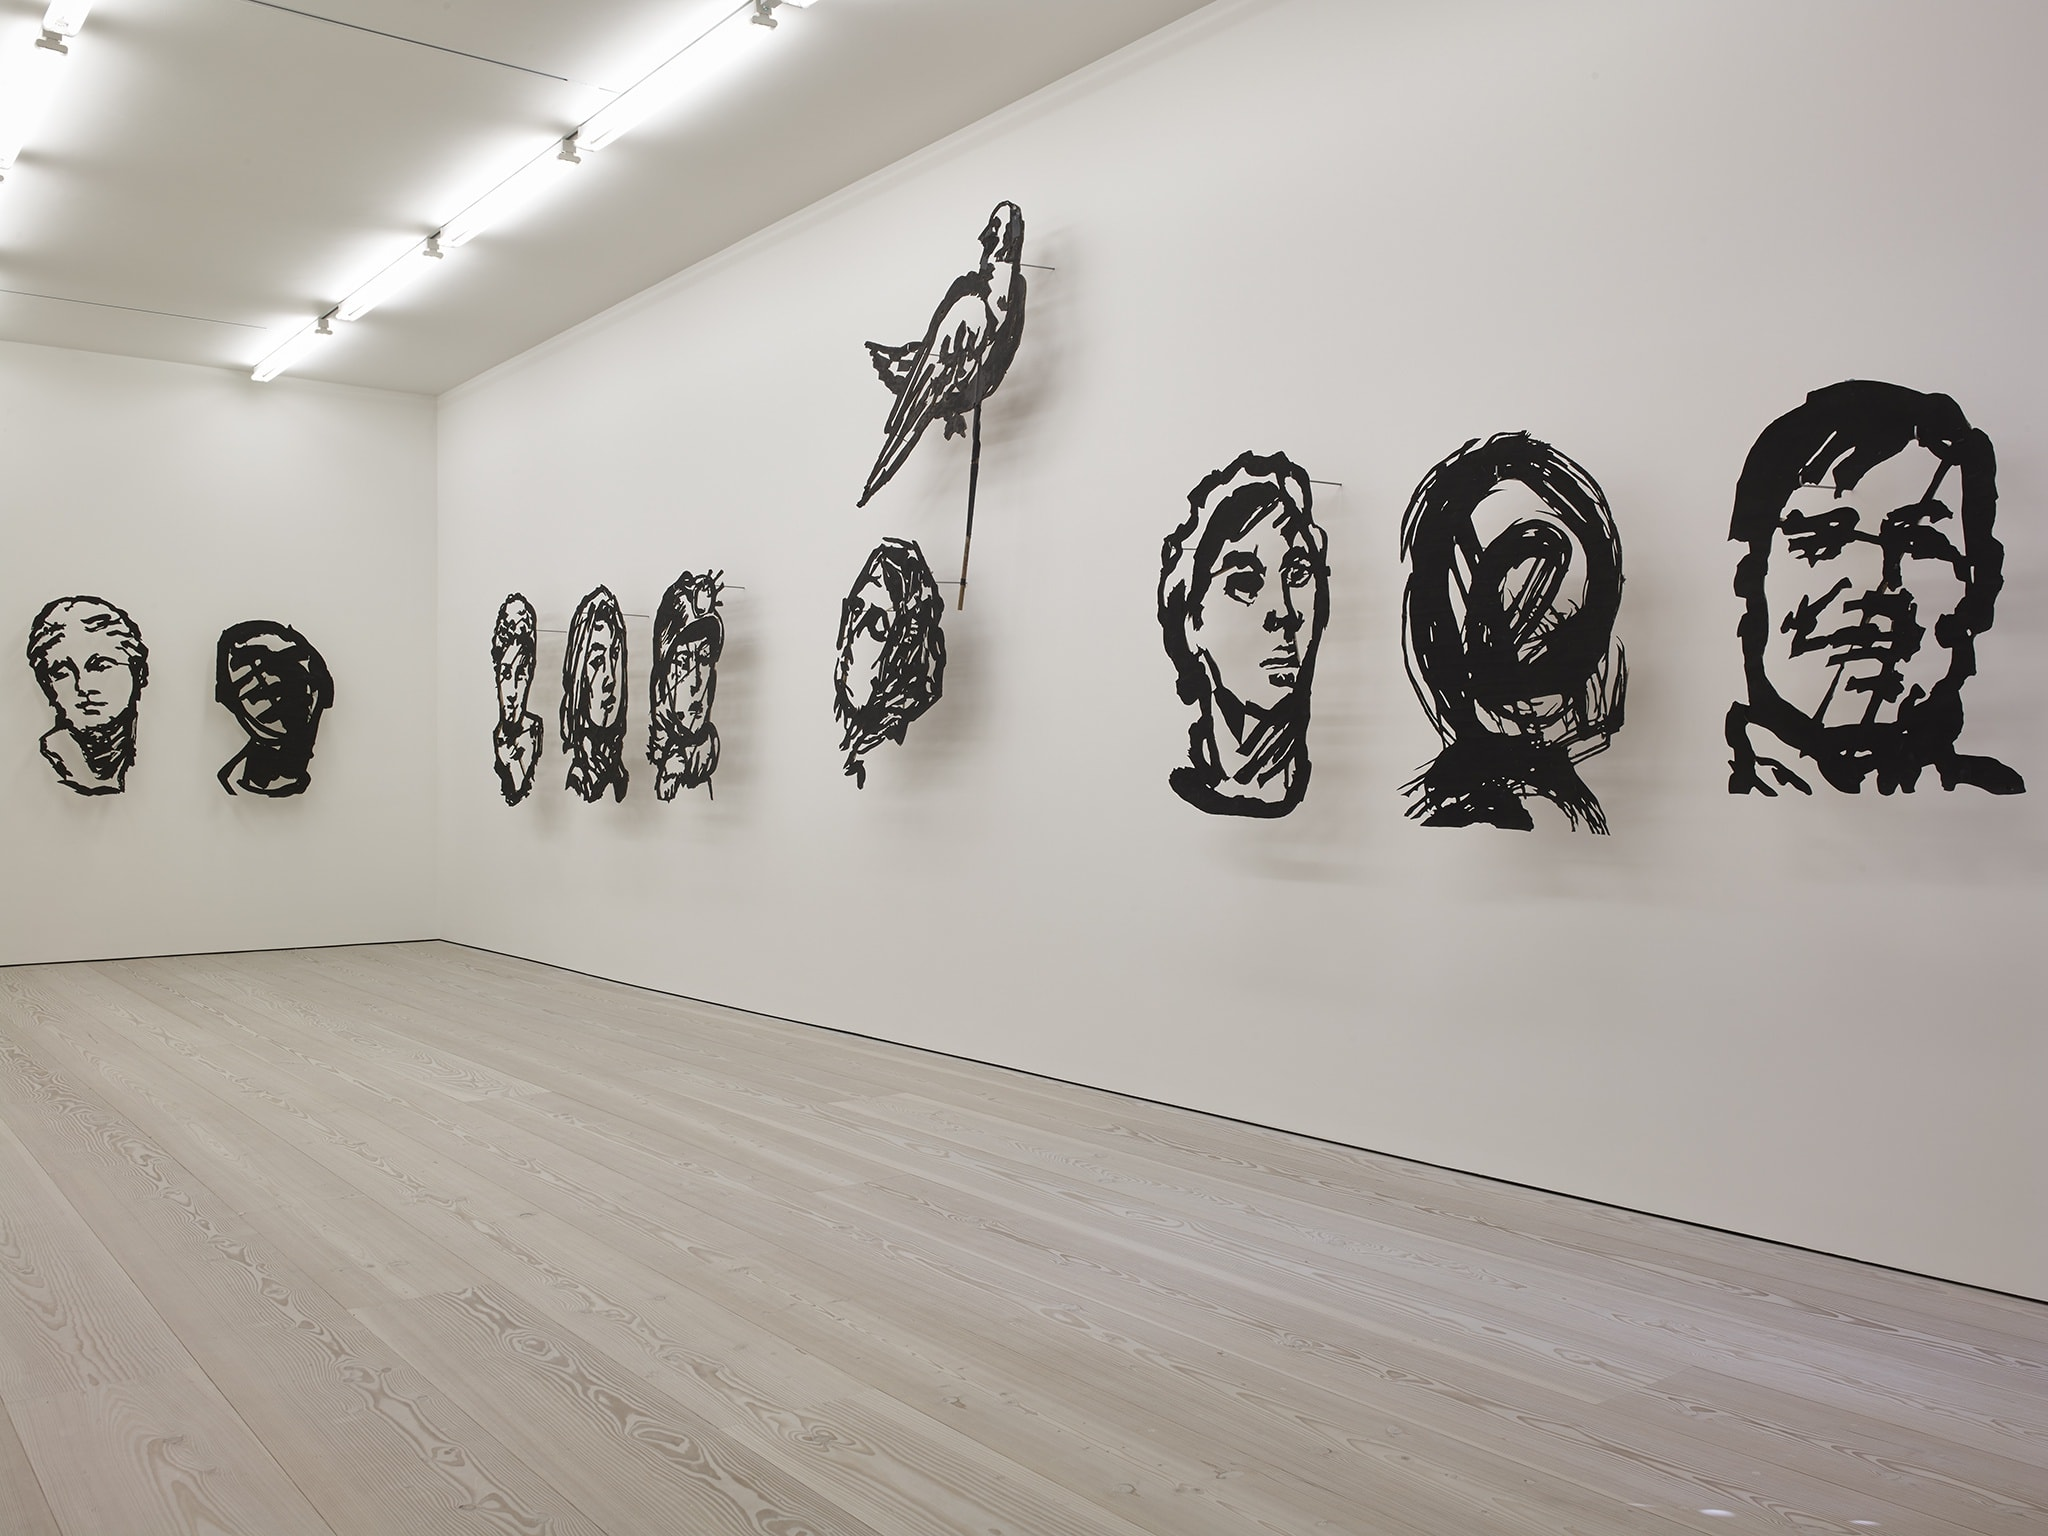 In a large white space, many sculptures of silhouettes of faces hang, made of black metal. They are made so only the features are represented, and the rest of the faces are filled out by the white wall they hang on.